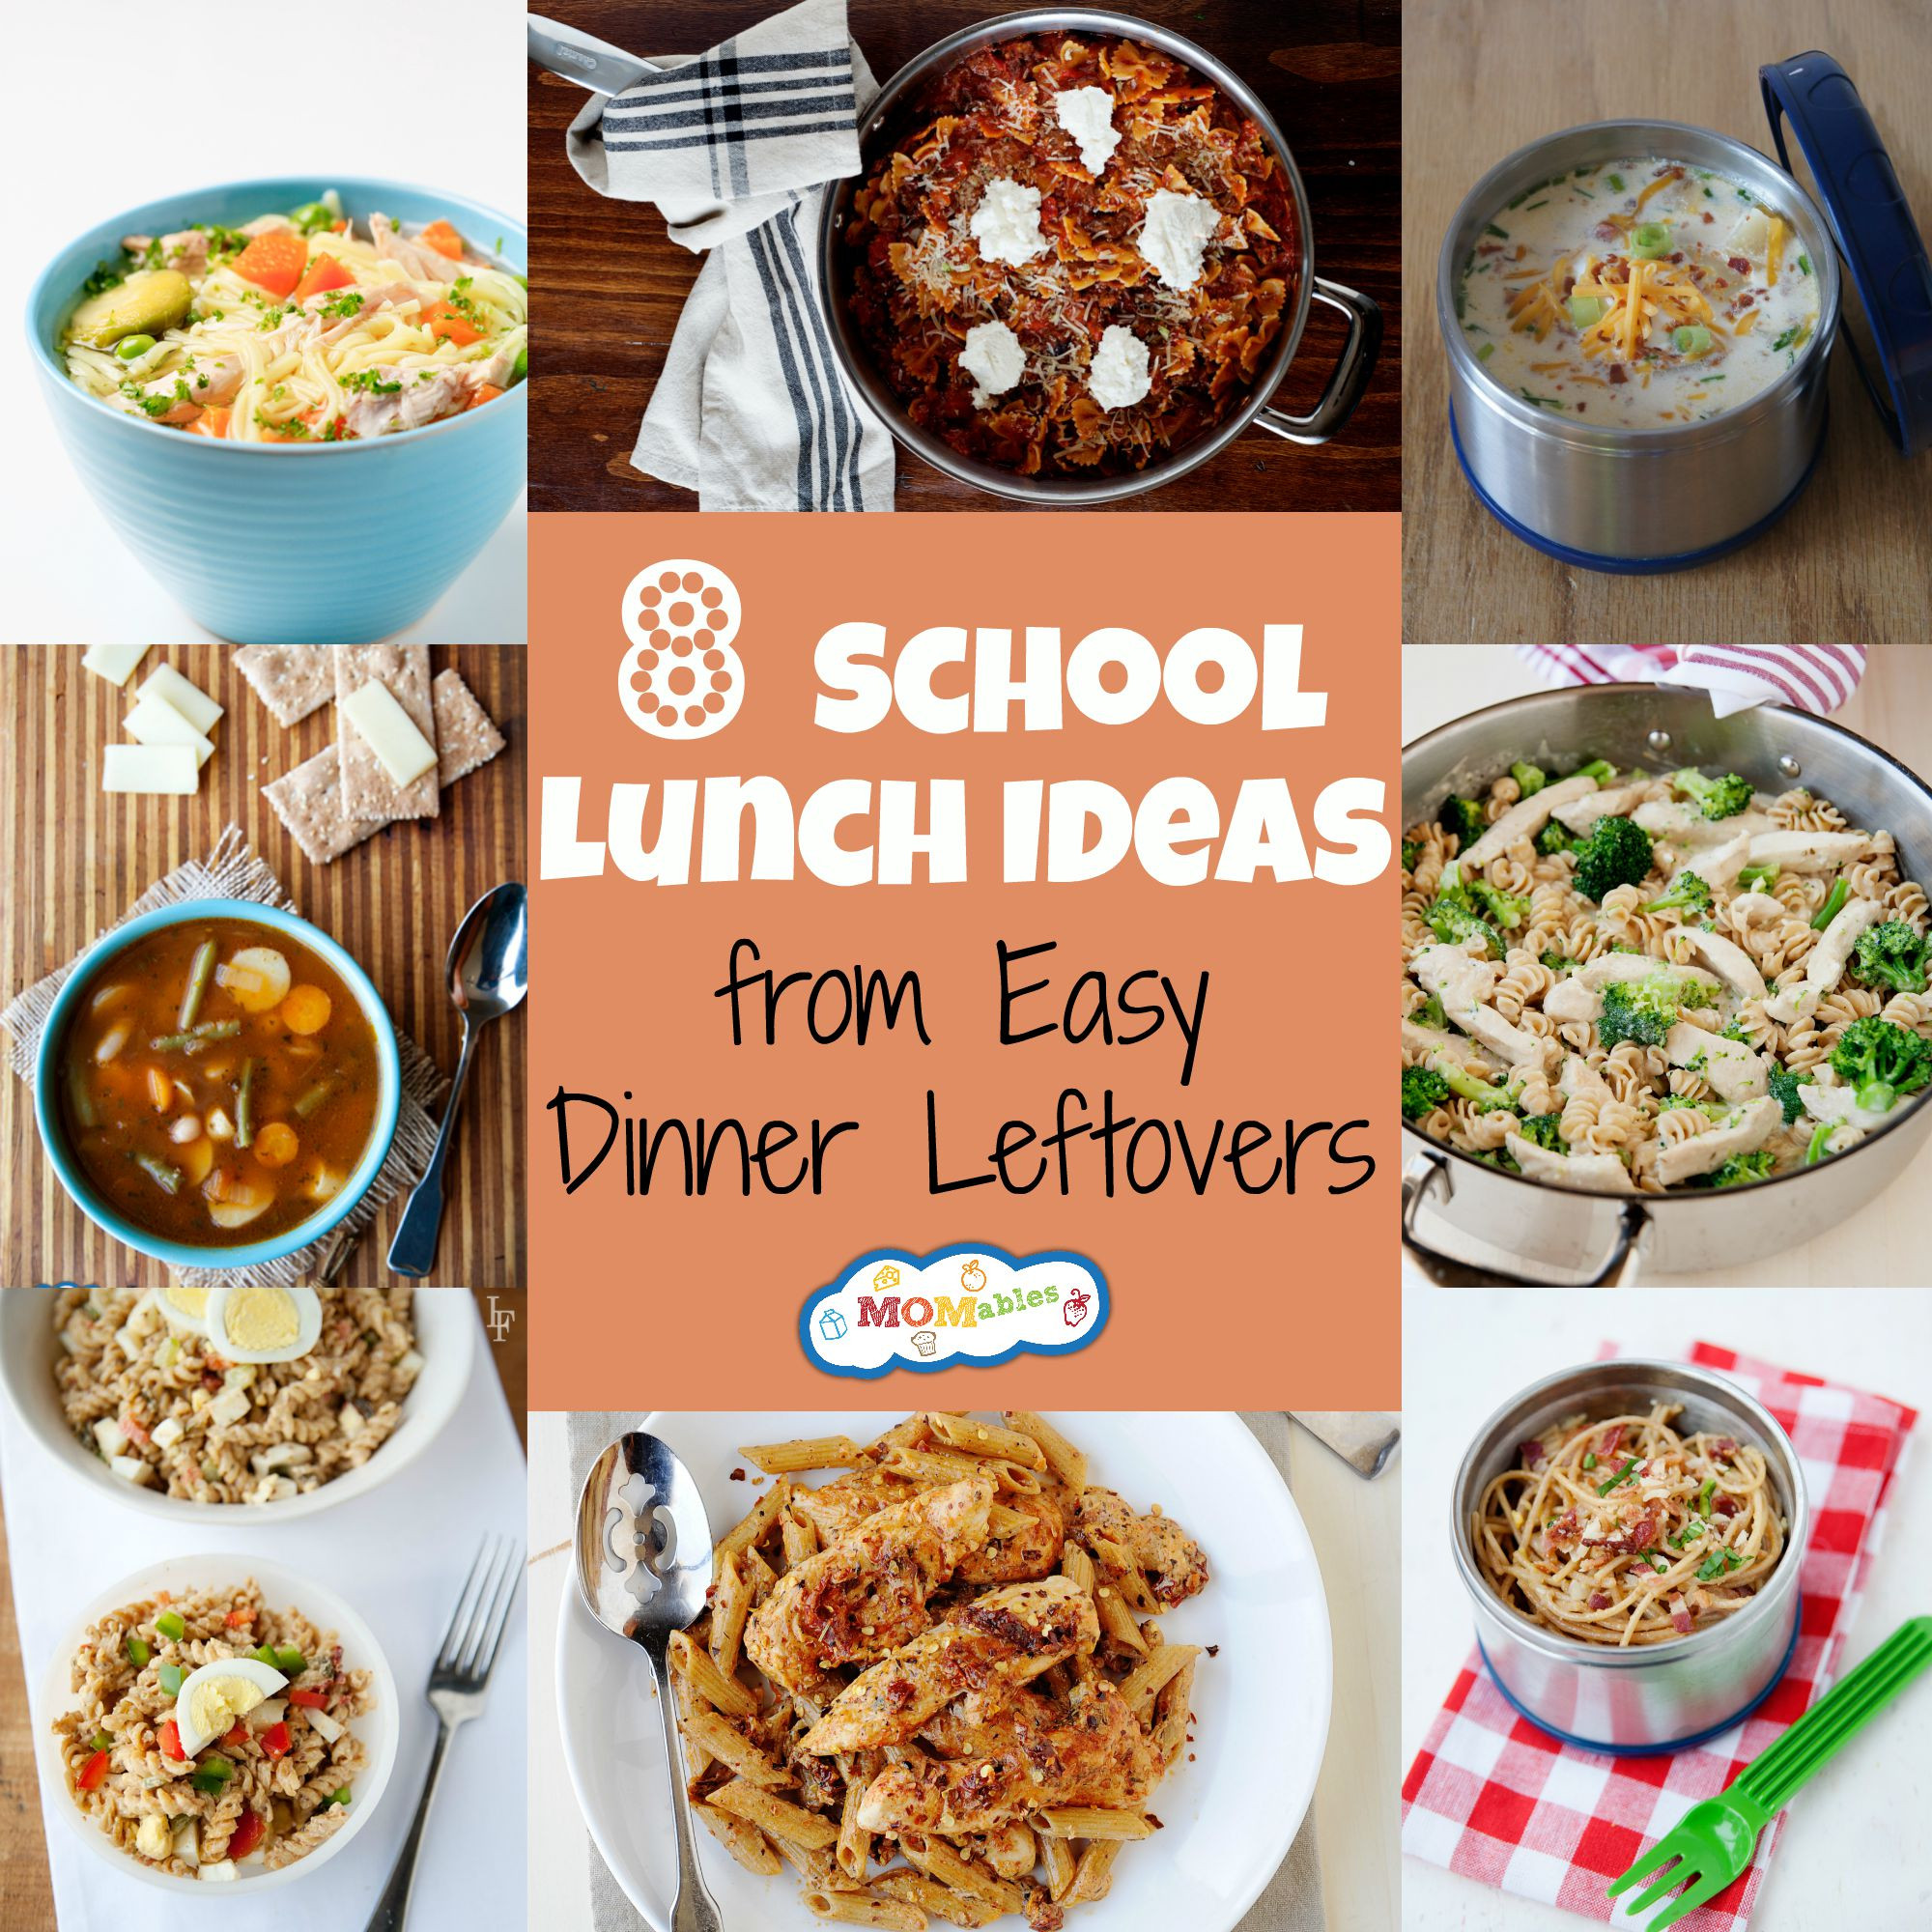 Healthy Lunch And Dinner Ideas  8 School Lunch Ideas from Easy Dinner Leftovers MOMables